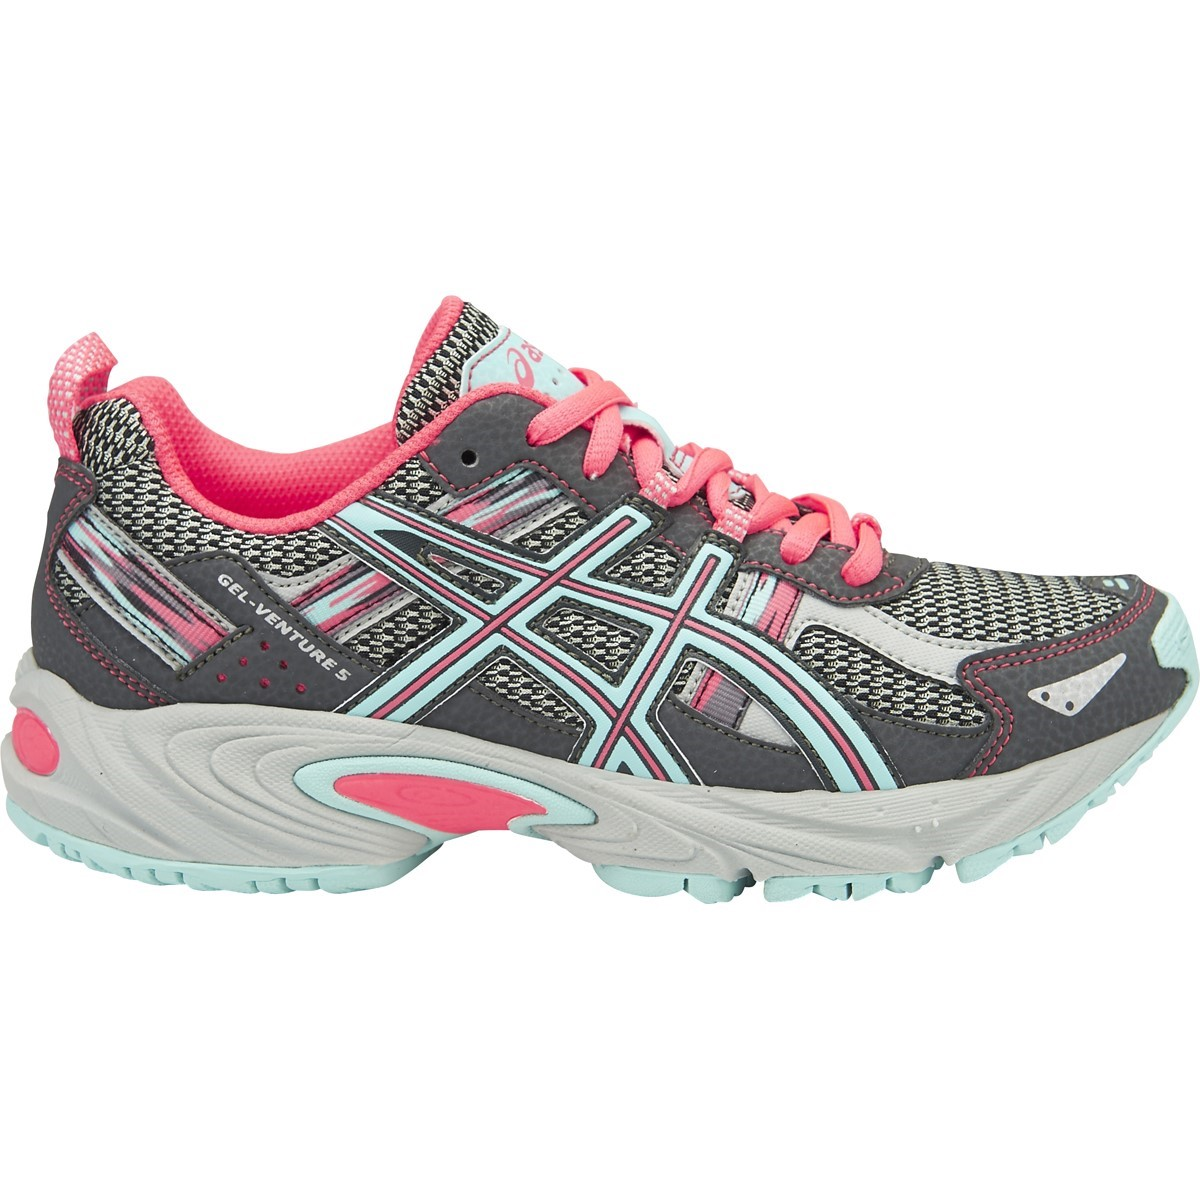 61762e91e1 Asics Gel Venture 5 GS - Kids Girls Trail Running Shoes